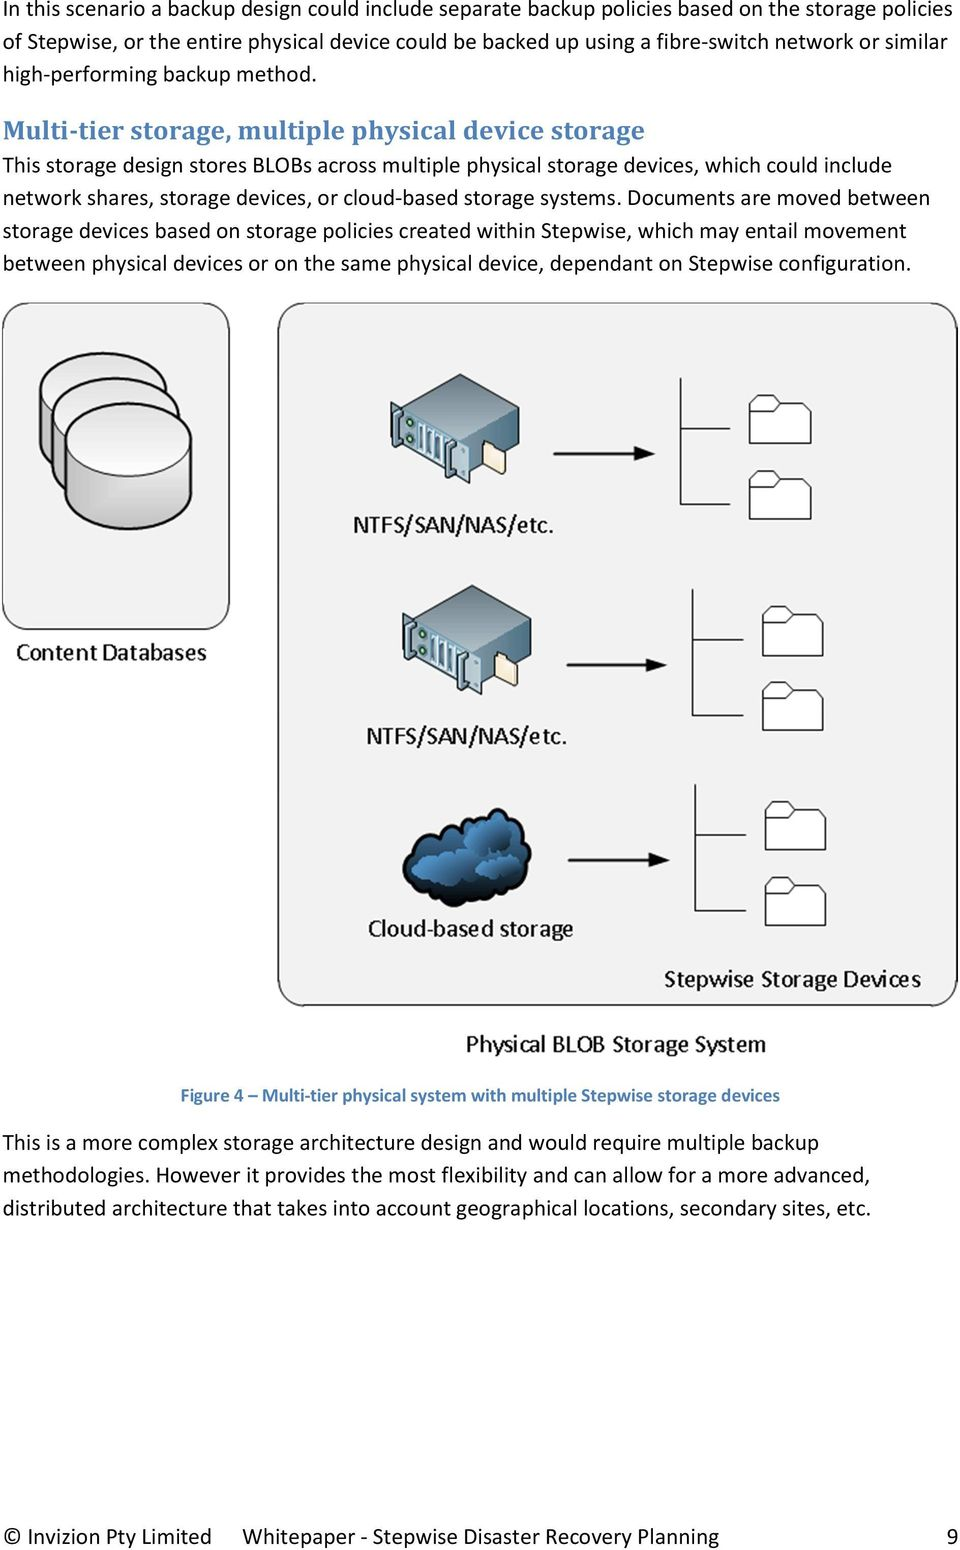 Multi-tier storage, multiple physical device storage This storage design stores BLOBs across multiple physical storage devices, which could include network shares, storage devices, or cloud-based